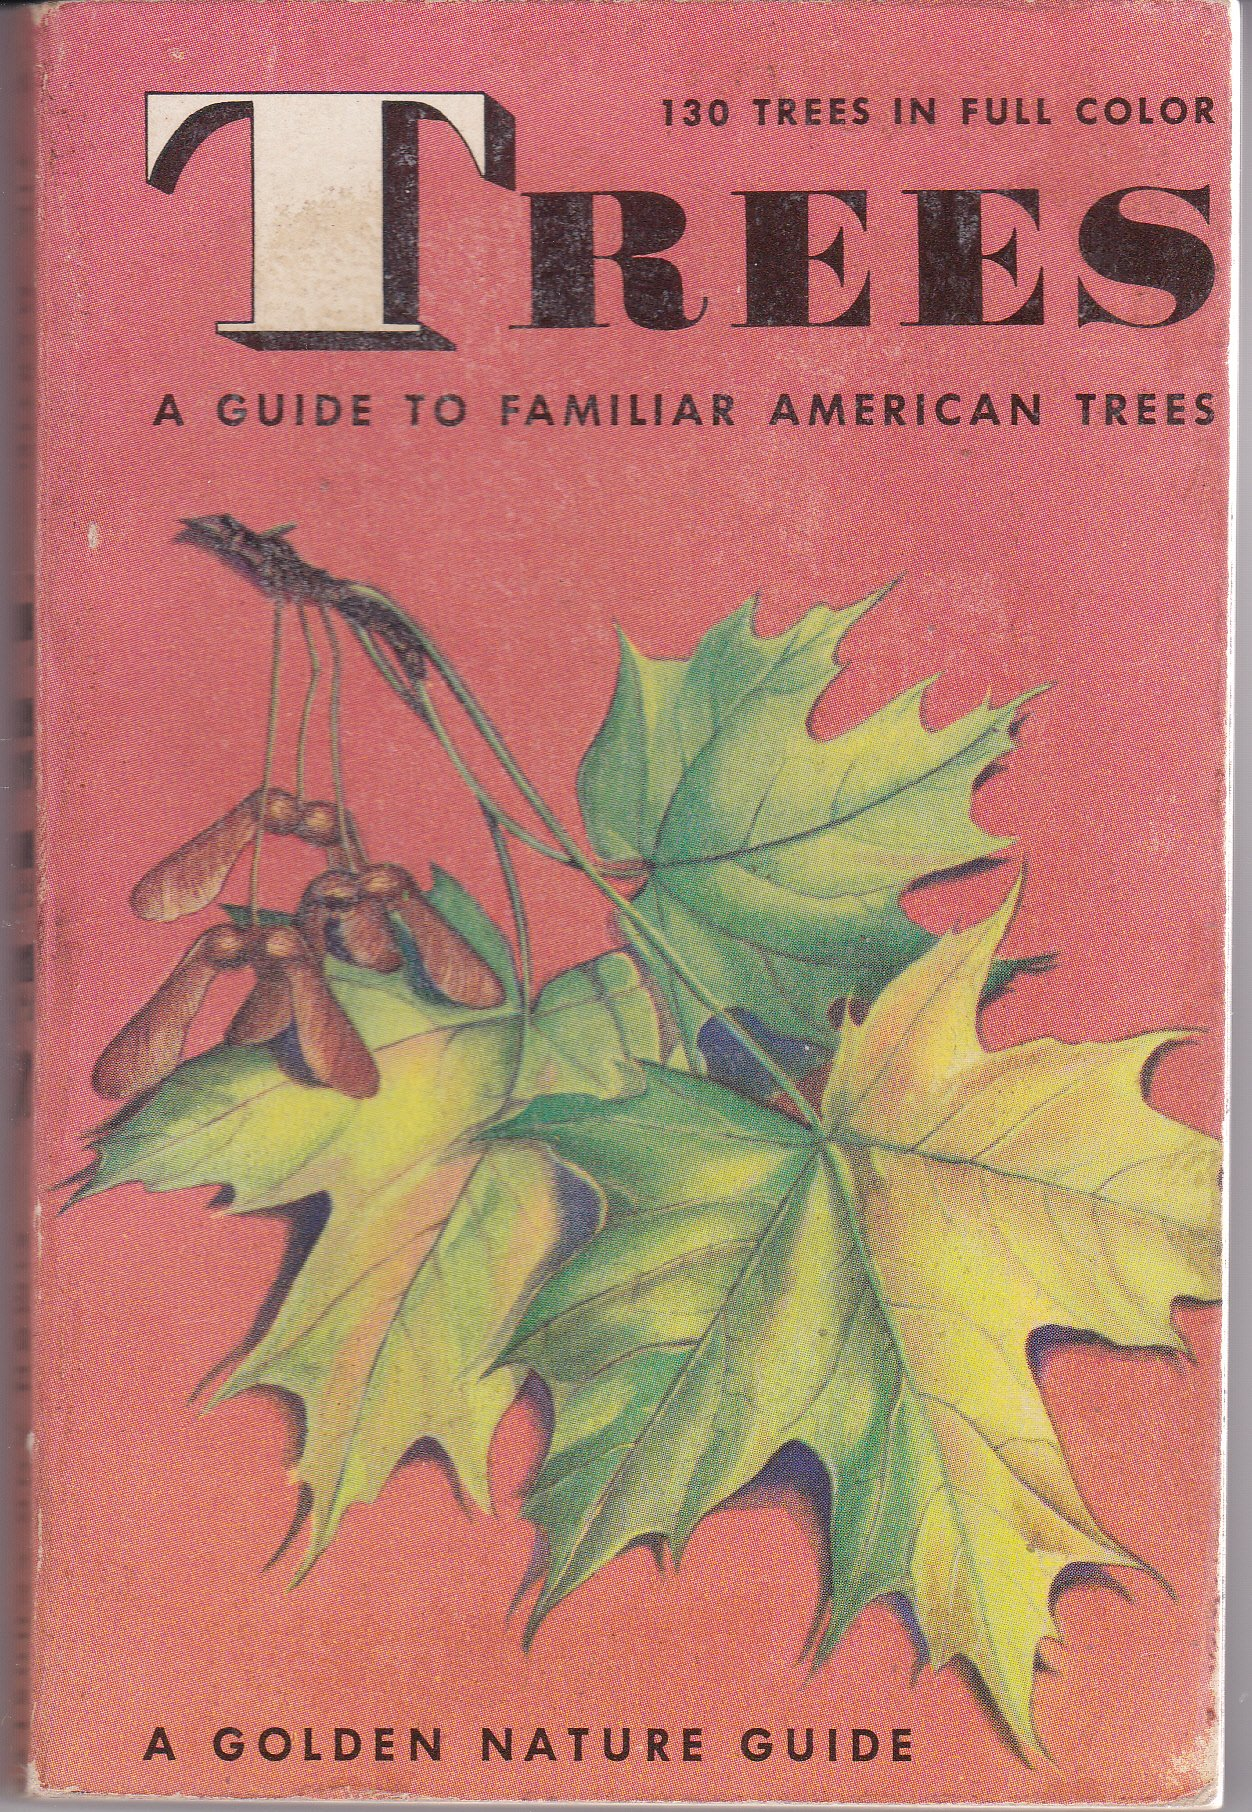 Trees a Guide to Familiar American Trees (A GOLDEN NATURE GUIDE): Herbert  S. Zim, Alexander C. Martin: Amazon.com: Books